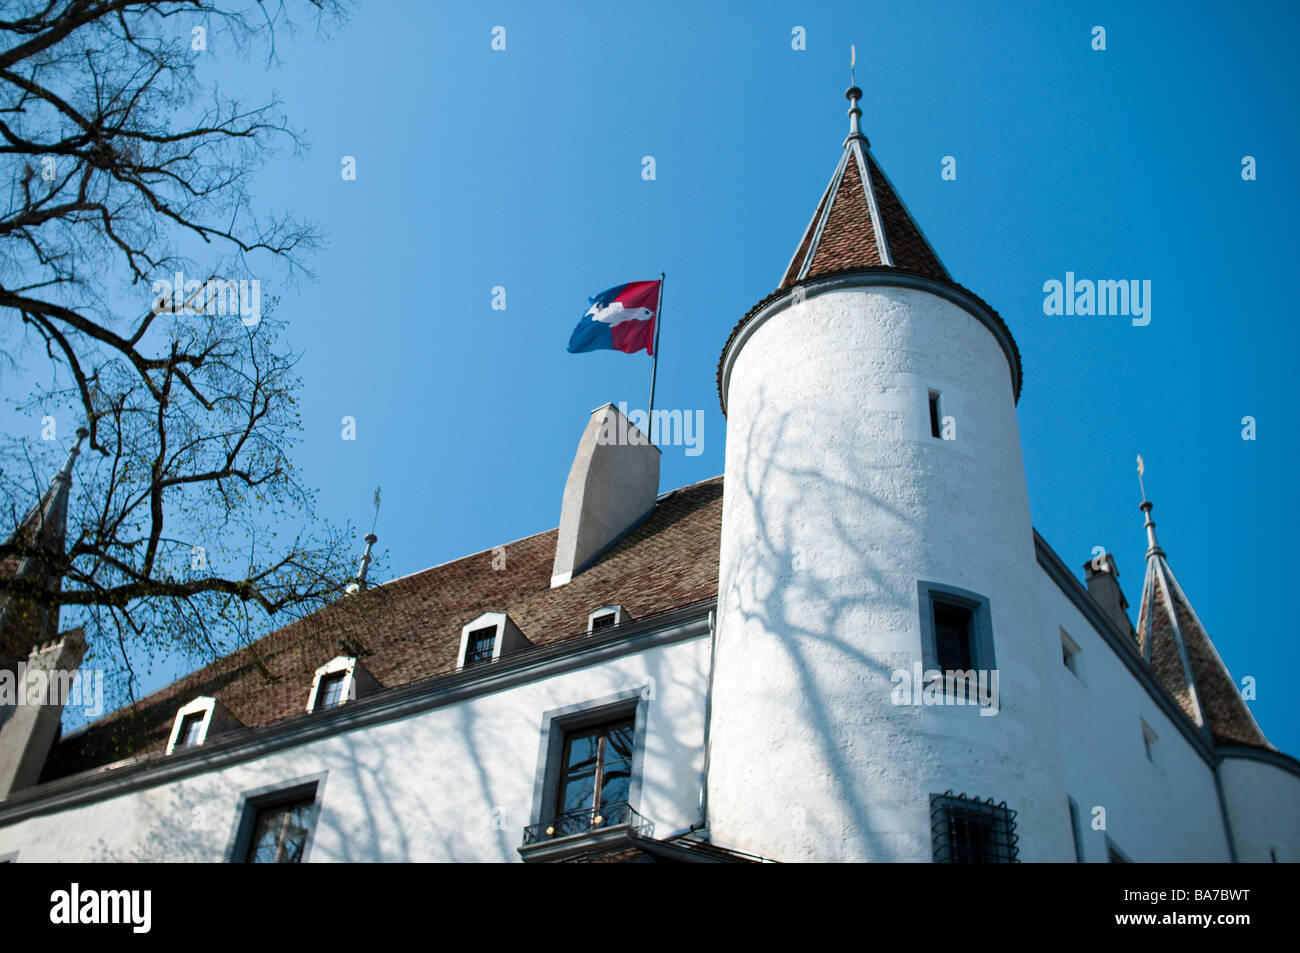 Château de Nyon, Switzerland, a white castle built on the site of an ancient roman fortress overlooks lake - Stock Image